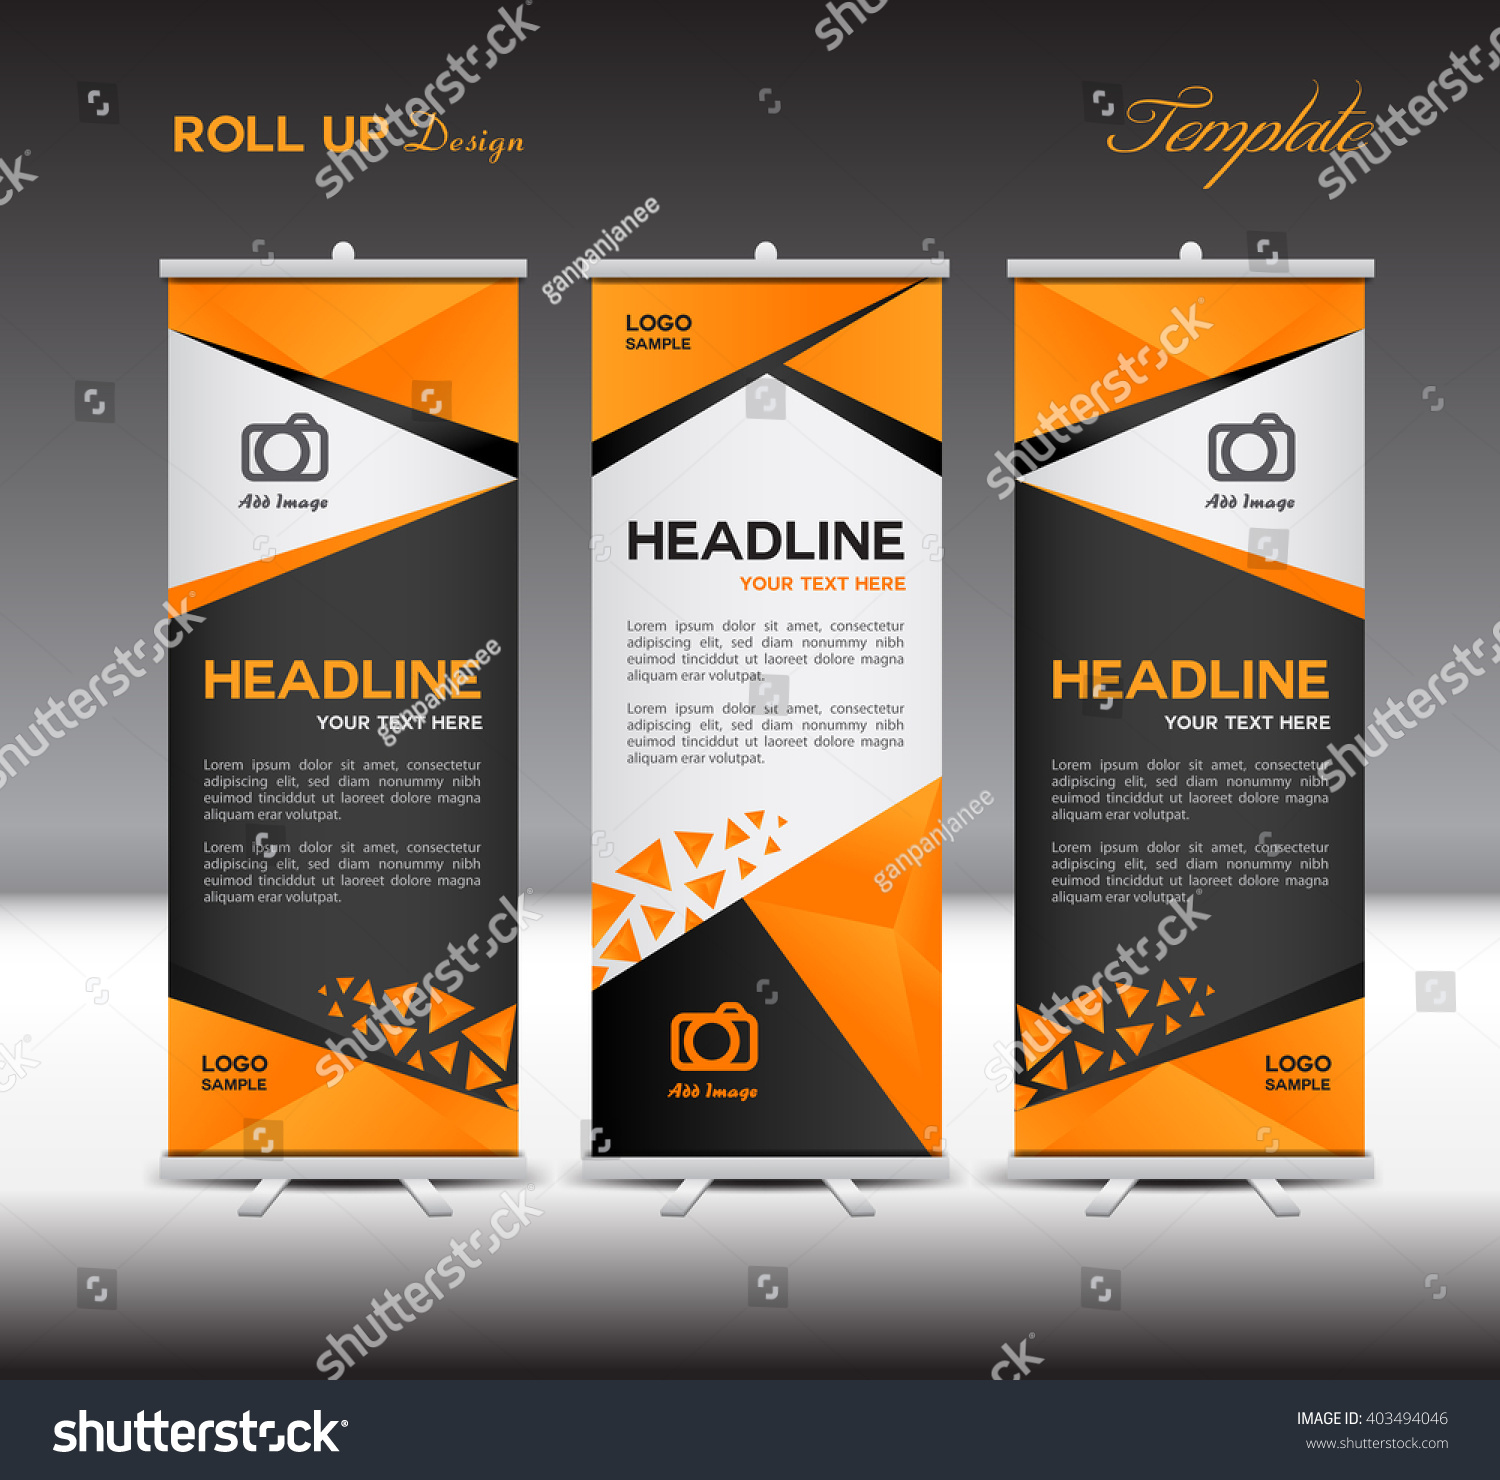 orange and black roll up banner vector template display polygon orange and black roll up banner vector template display polygon background advertisement